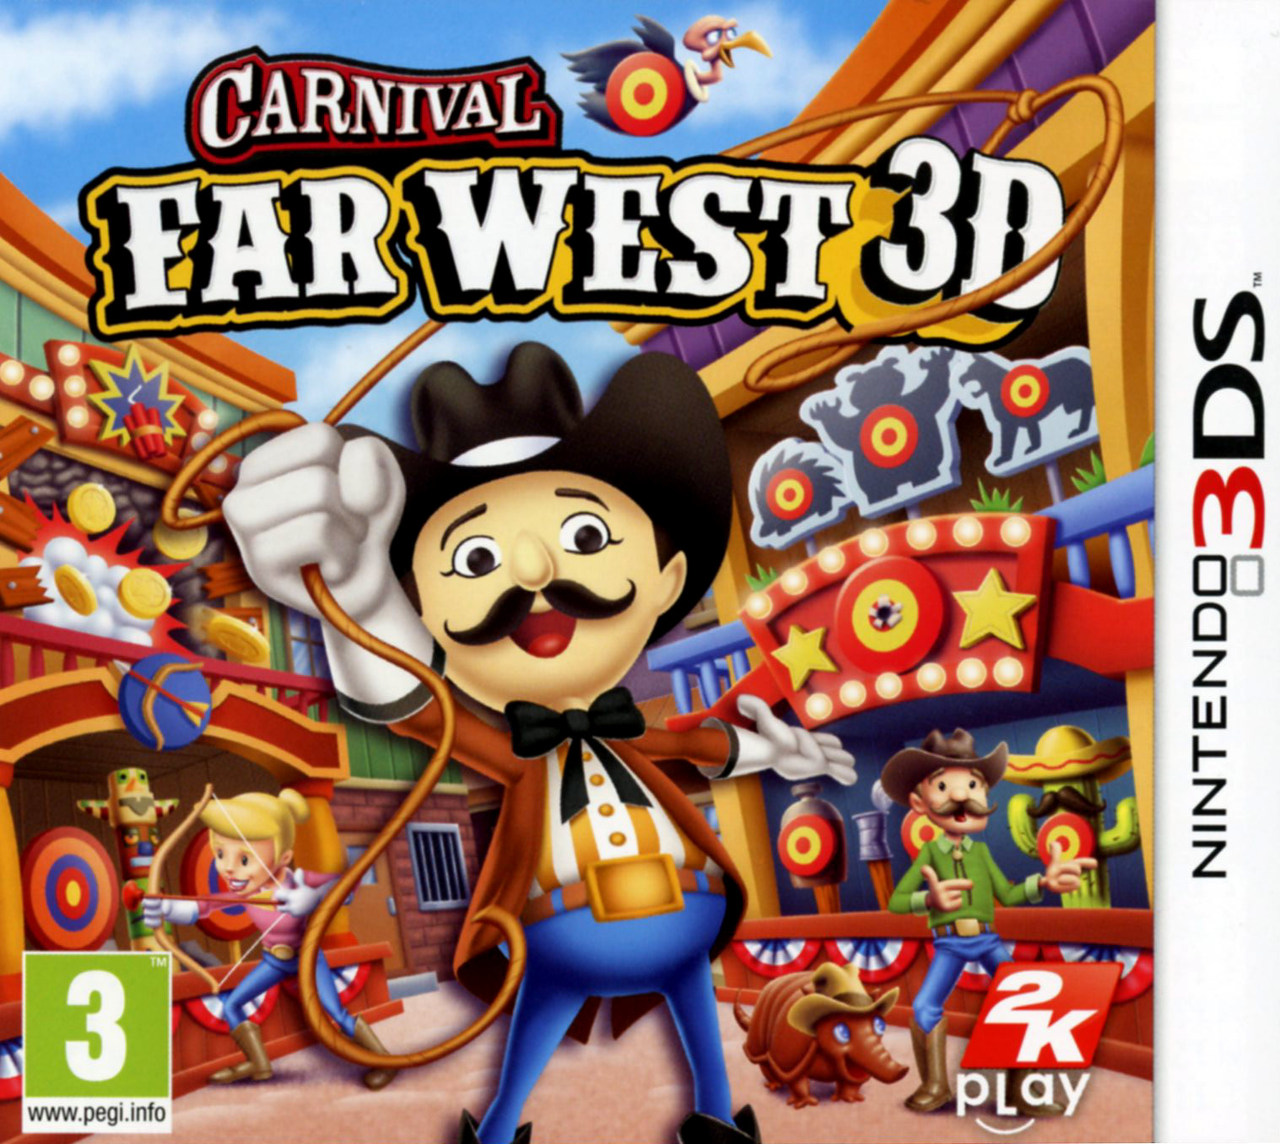 carnival far west 3d sur nintendo 3ds. Black Bedroom Furniture Sets. Home Design Ideas